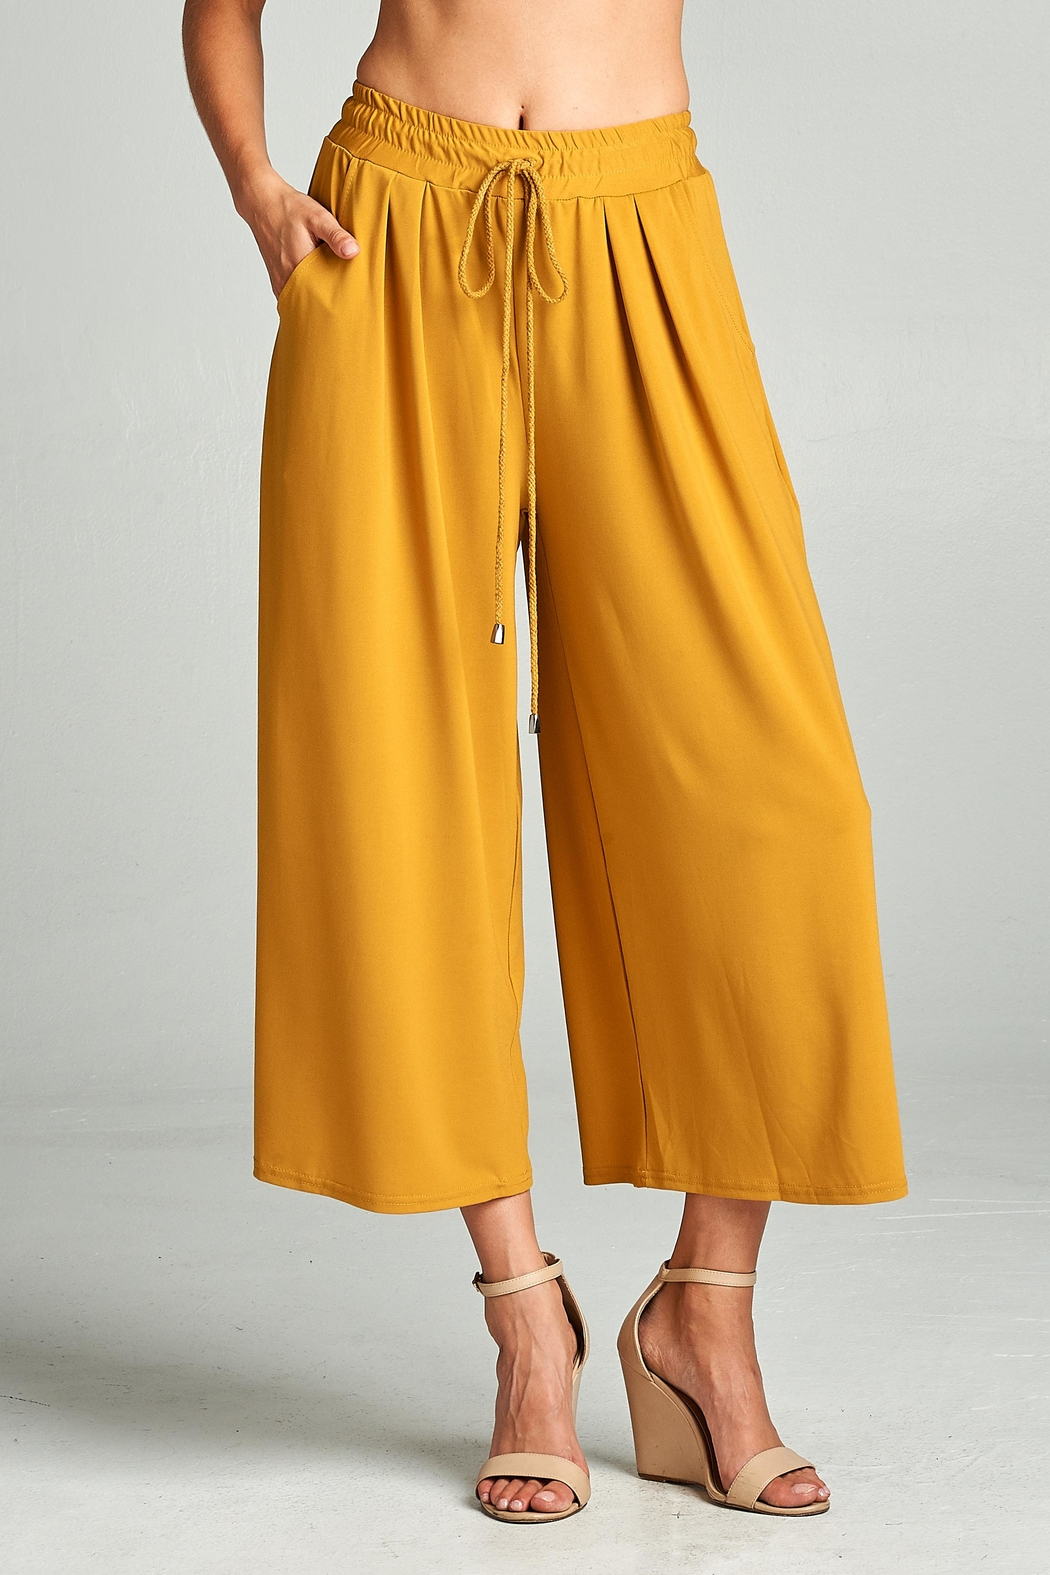 Racine Mustard Palazzo Pants From California By Racine